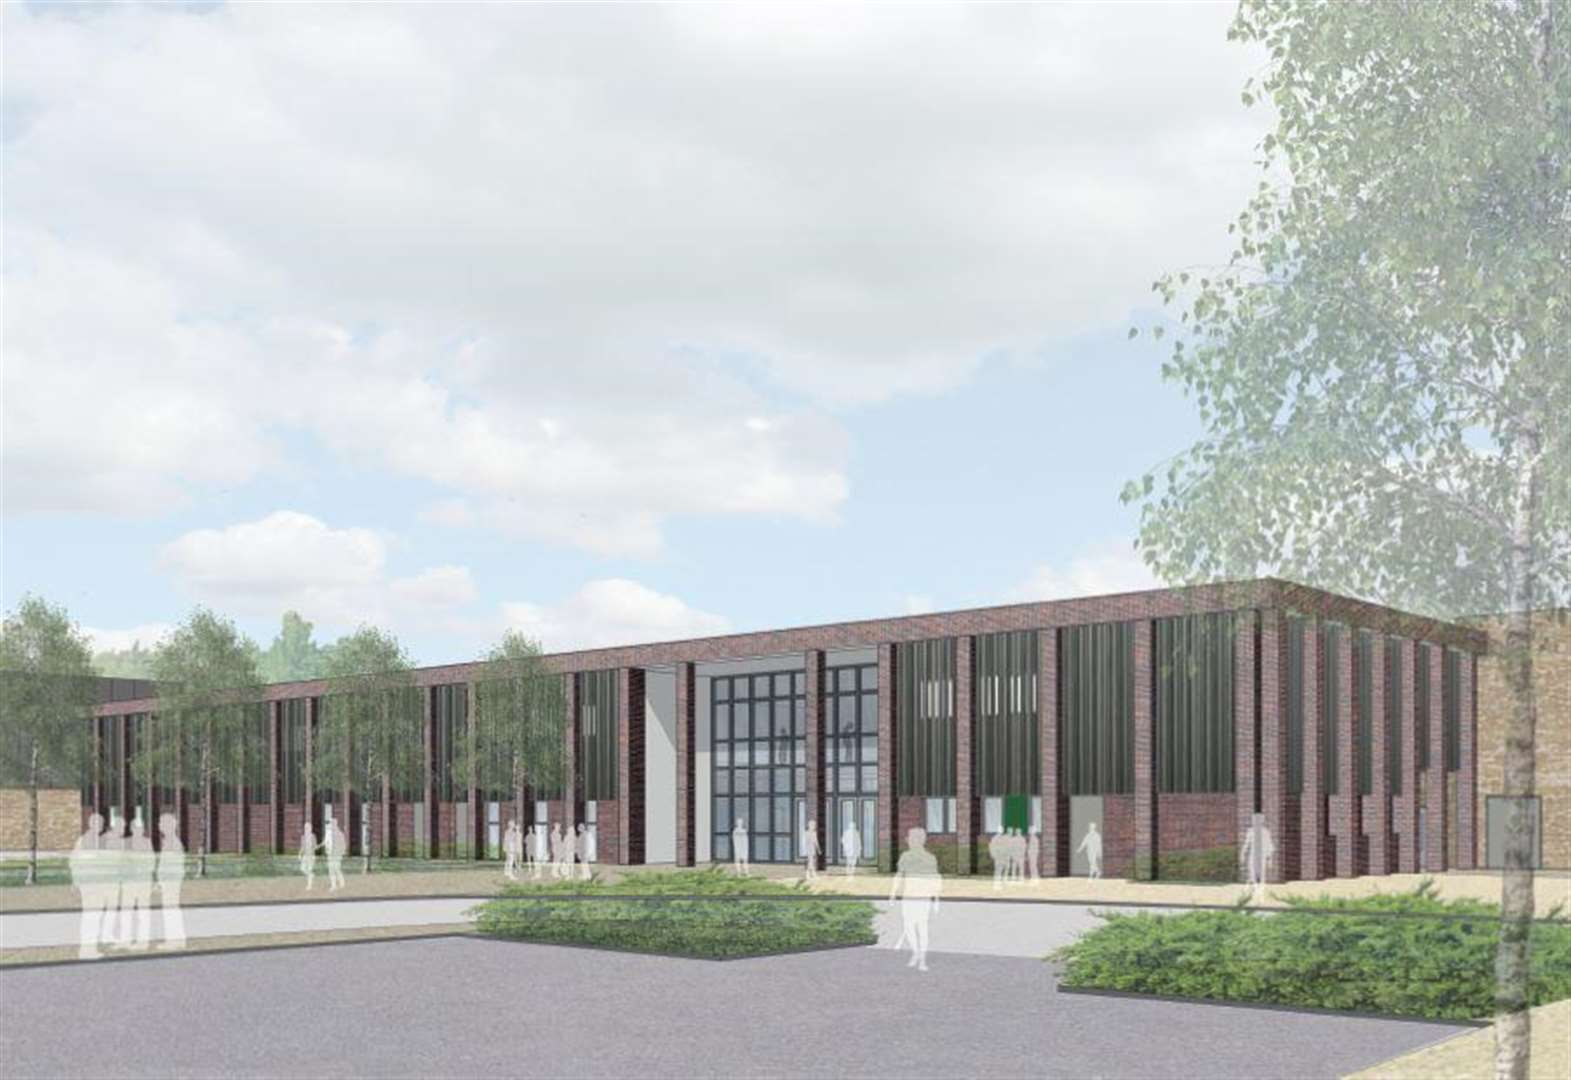 Competition to run at least three new schools for 2,600-home Stortford North development